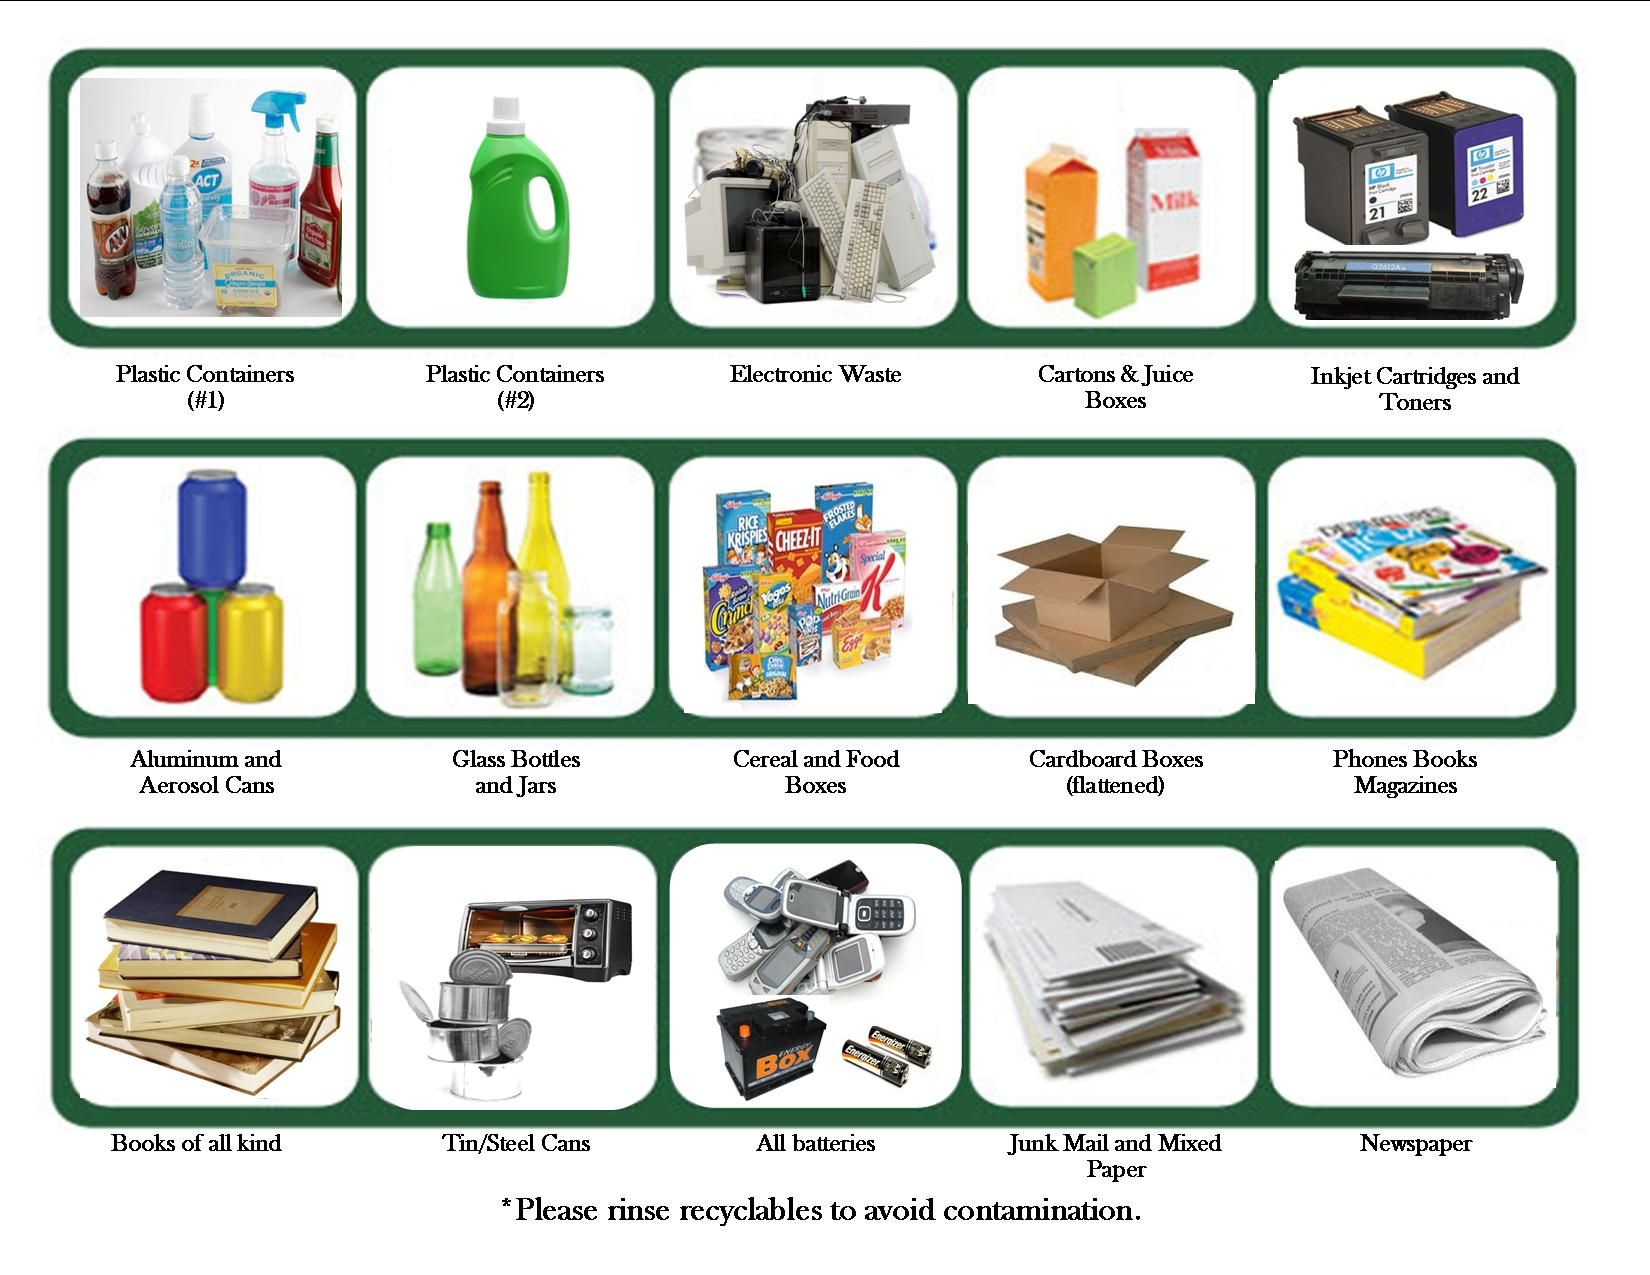 Items Accepted By Most Recycling Centers Include Some